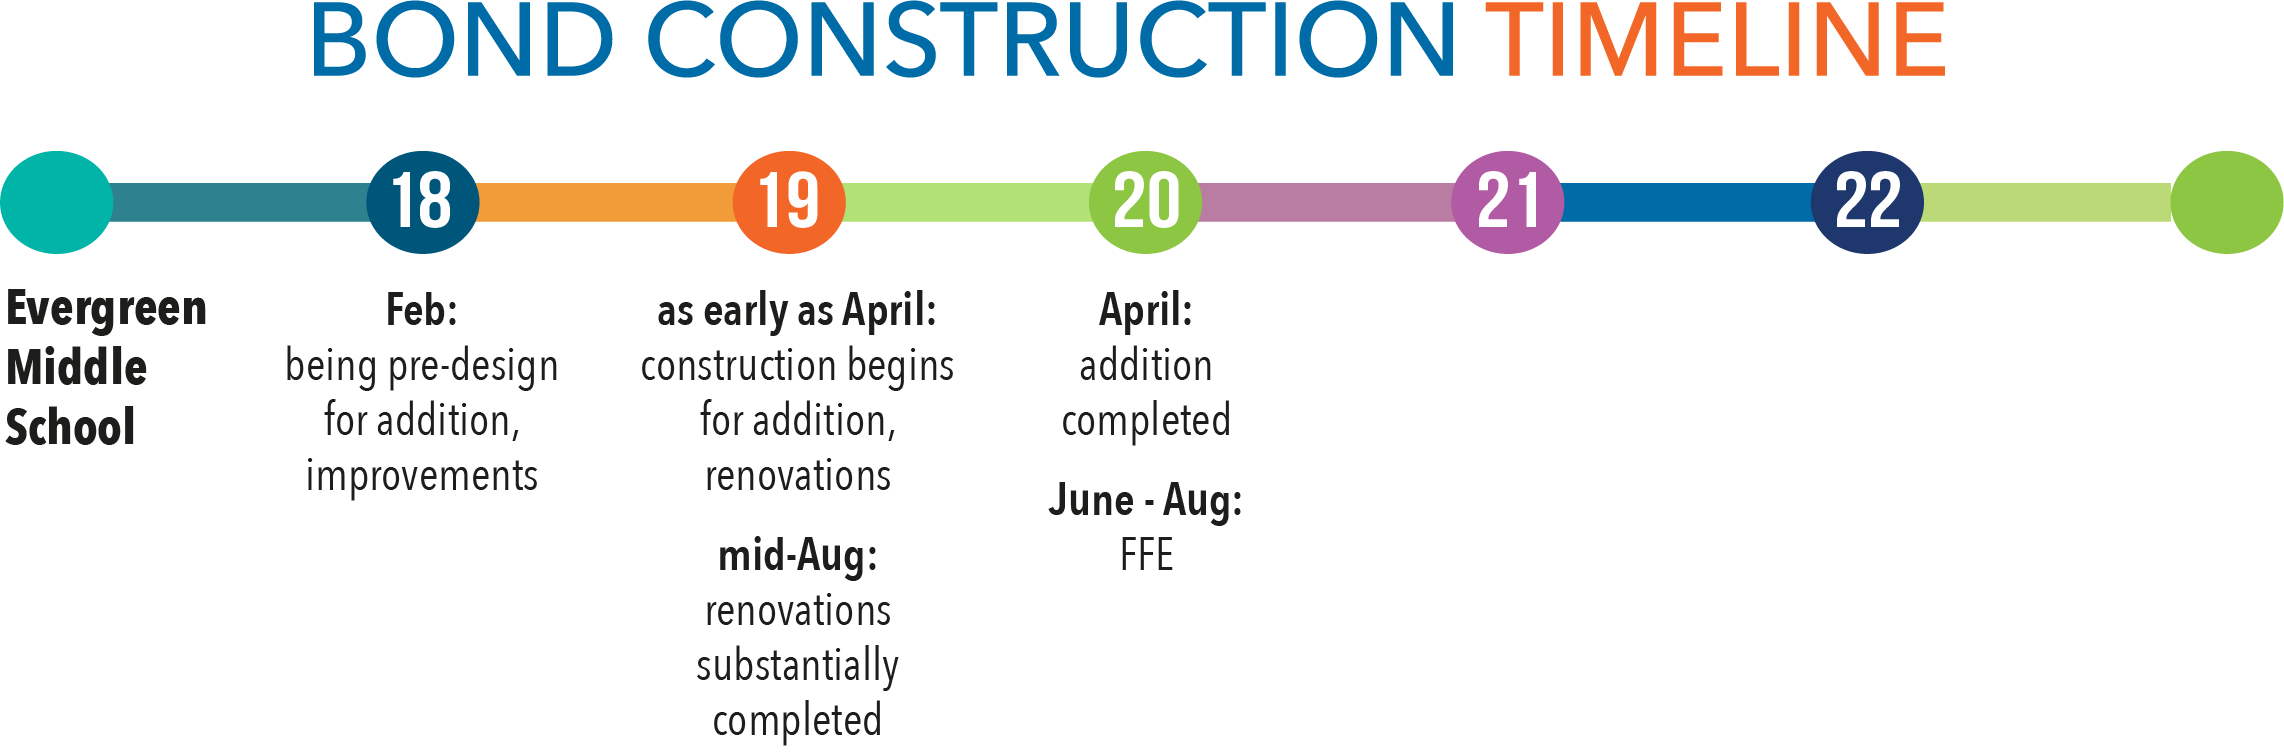 Bond construction timeline - Evergreen